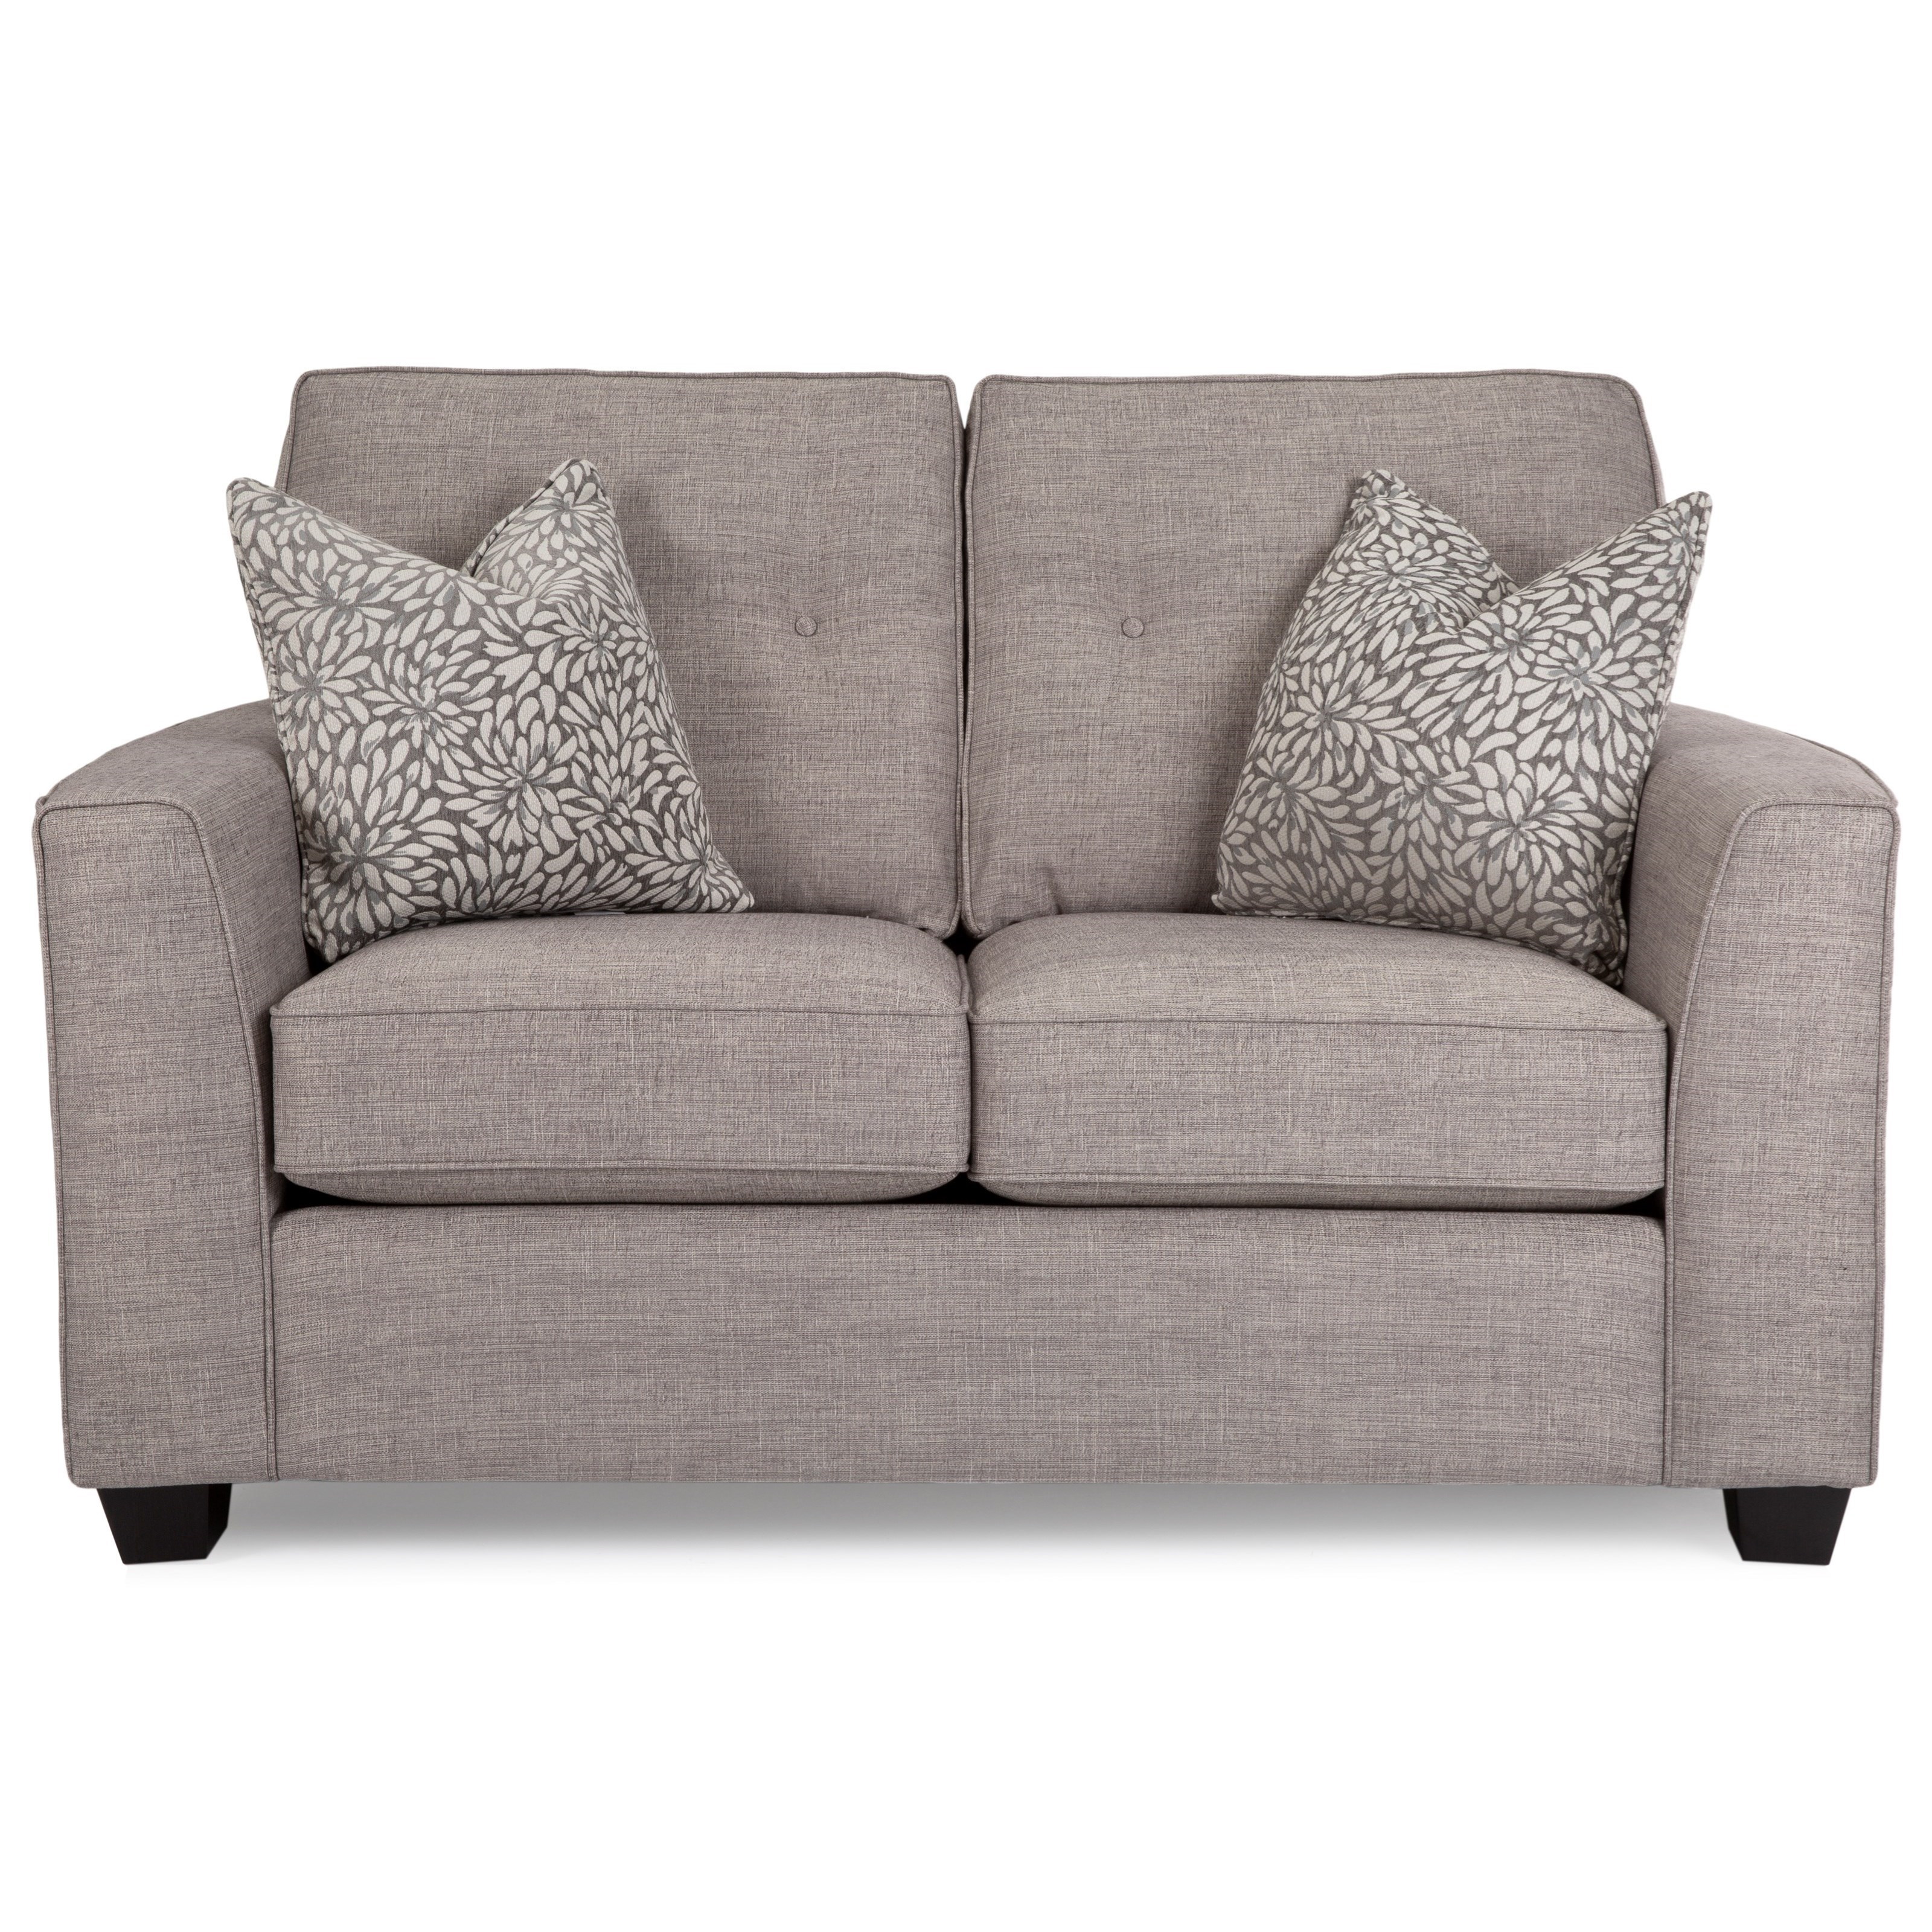 2967 Loveseat by Decor-Rest at Rooms for Less